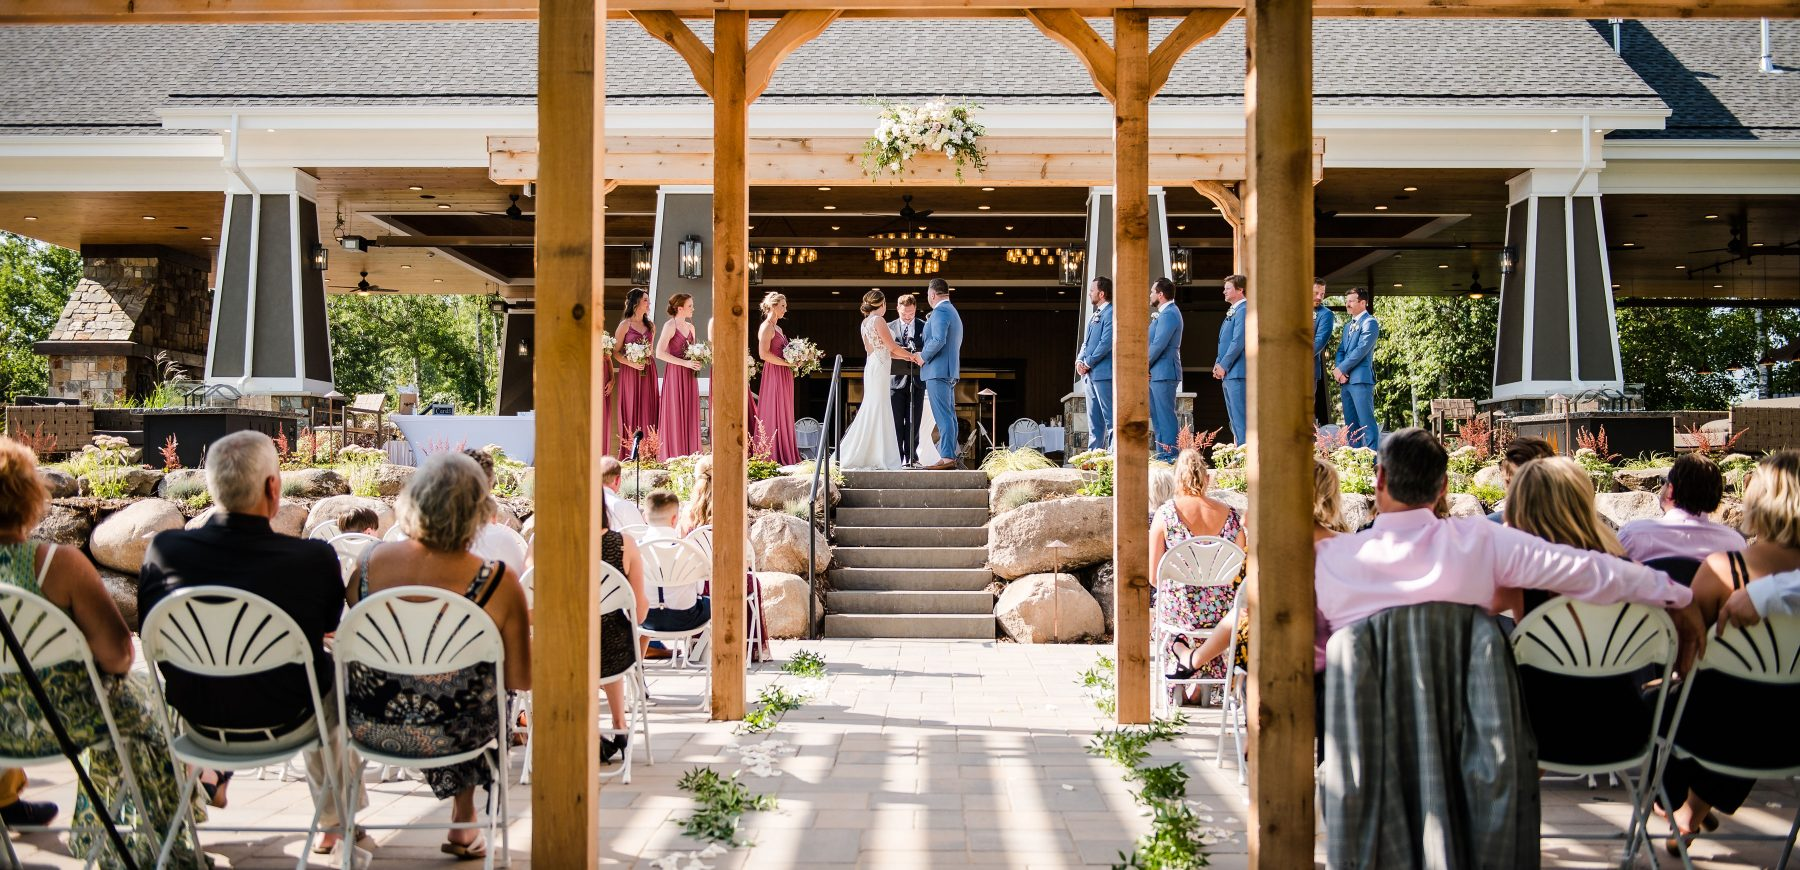 Seated guests looking at the bride and groom taking their vows next to the bridesmaids and groomsmen at The Pavilion